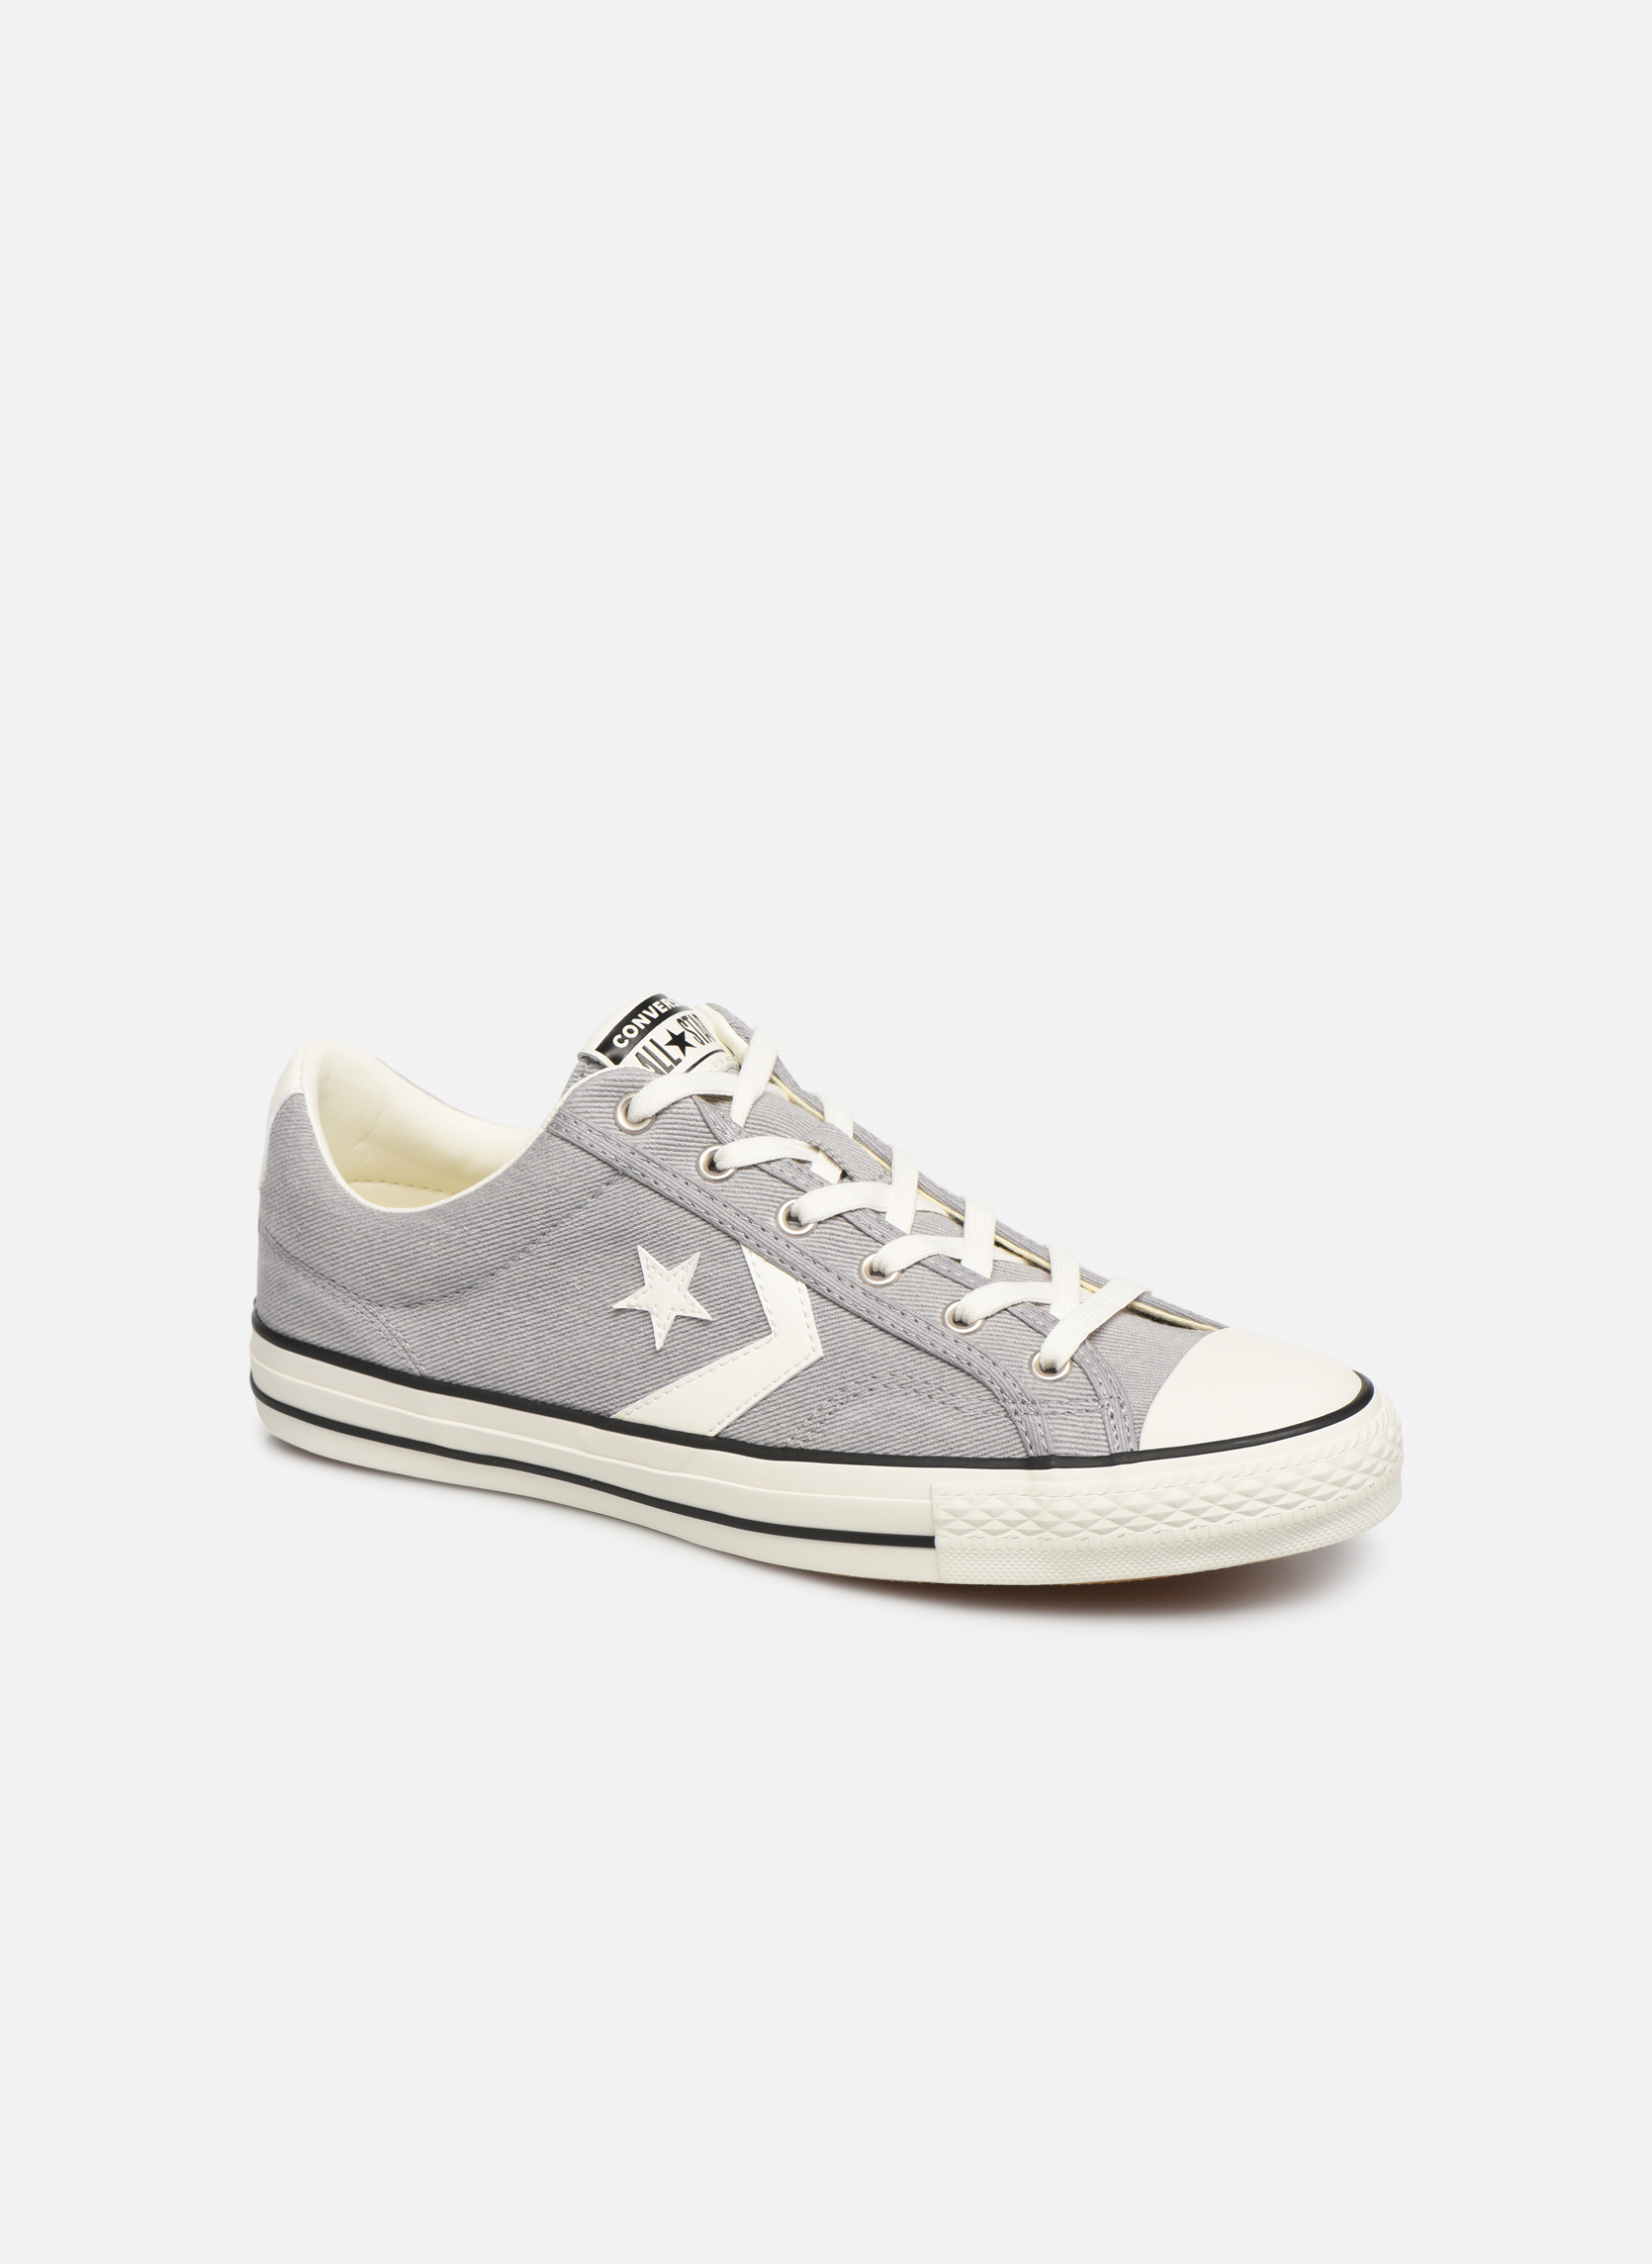 Sneakers Star Player Vitnage Canvas Ox by ConverseConverseGrijsPaar schoenen - Sneakers88875655557545Textiel